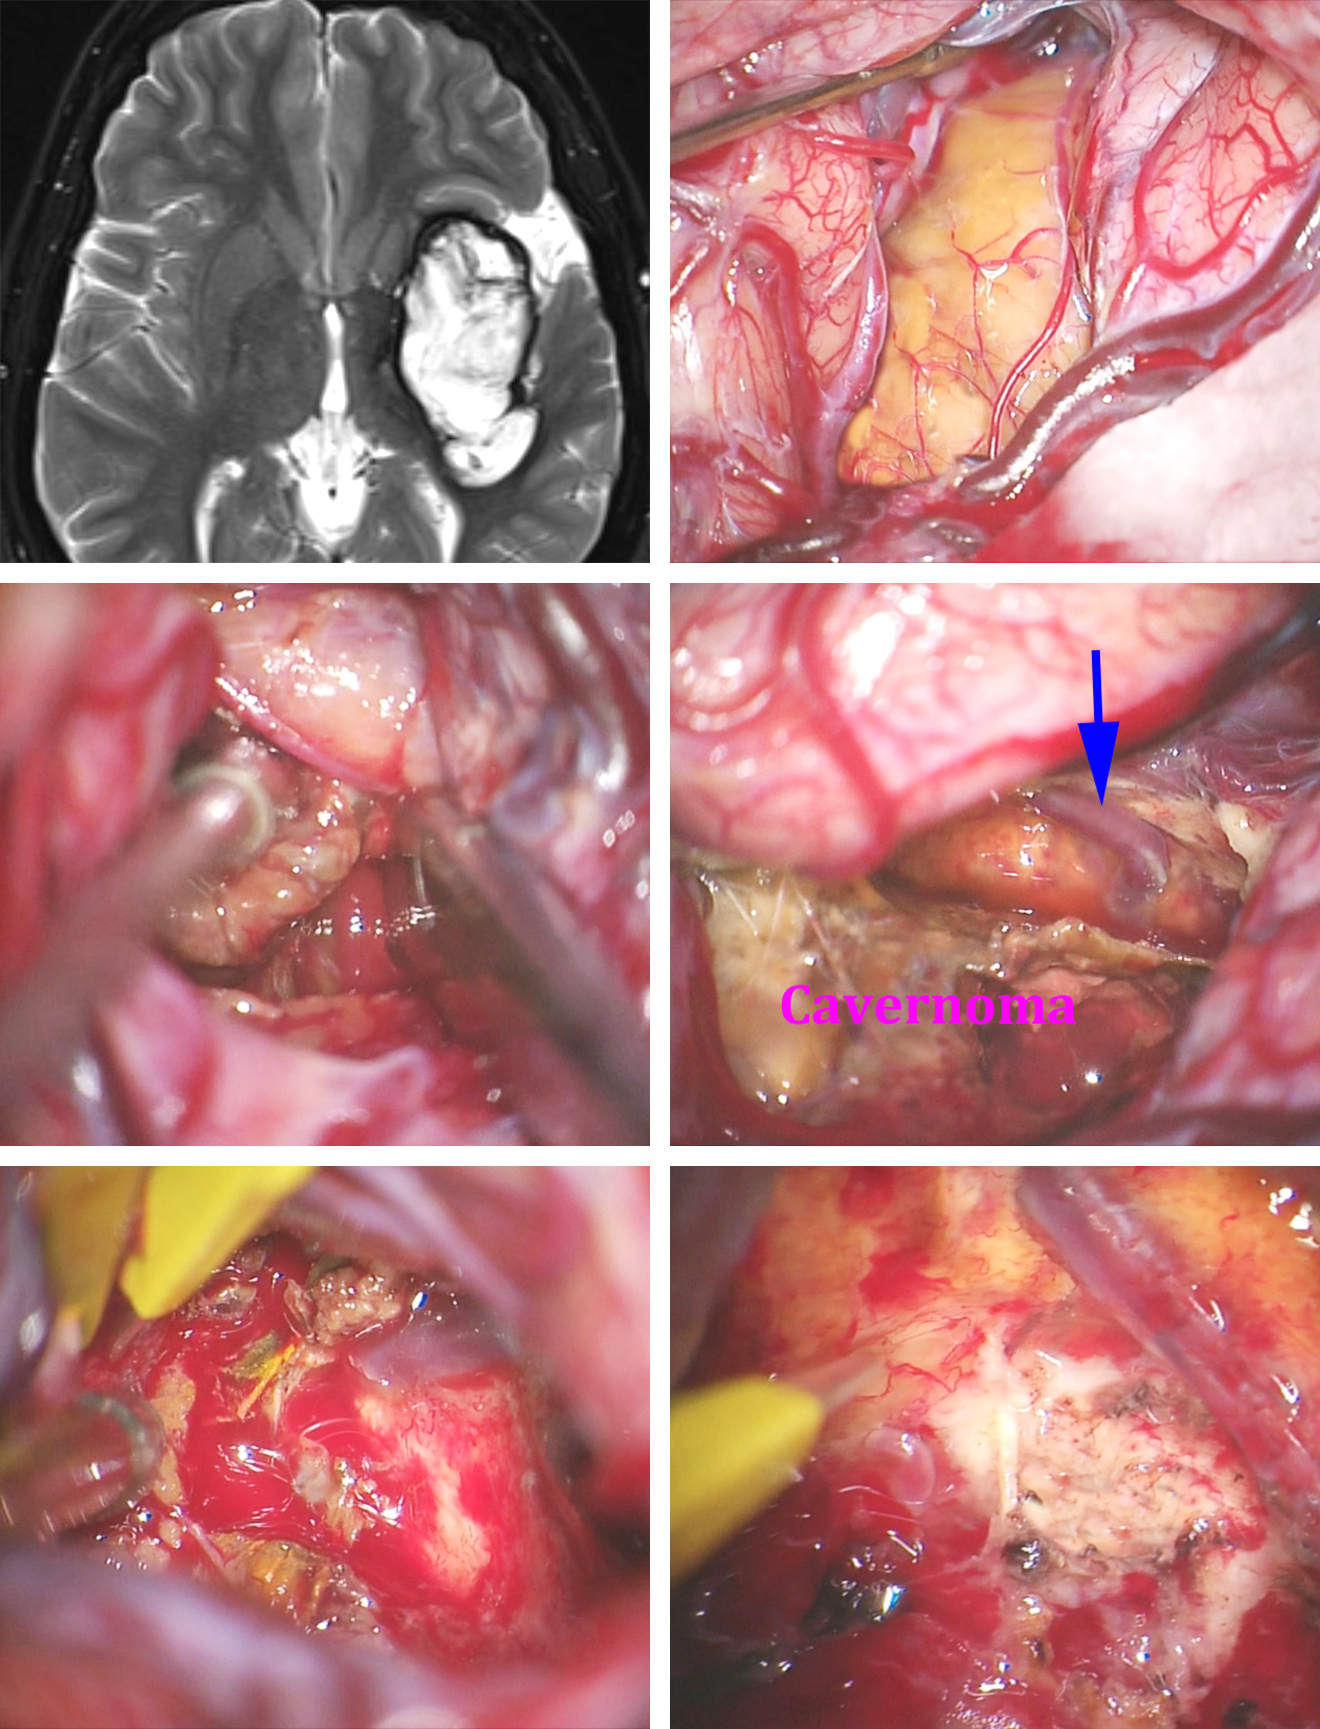 Figure 8: Resection of a left-sided insular CM is shown. The transsylvian approach unveiled the lateral capsule of the malformation after the MCA branches were mobilized (upper photos). I evacuated the contents of the capsule using pituitary rongeurs and mobilized the capsule away from the gliotic margins and the developmental venous anomaly (middle row-blue arrow). After gross total removal of the capsule, minor residual CM was encountered upon careful inspection and was removed (lower row). The resection cavity only contained gliotic margins without any evidence of malformation (lower right photo).